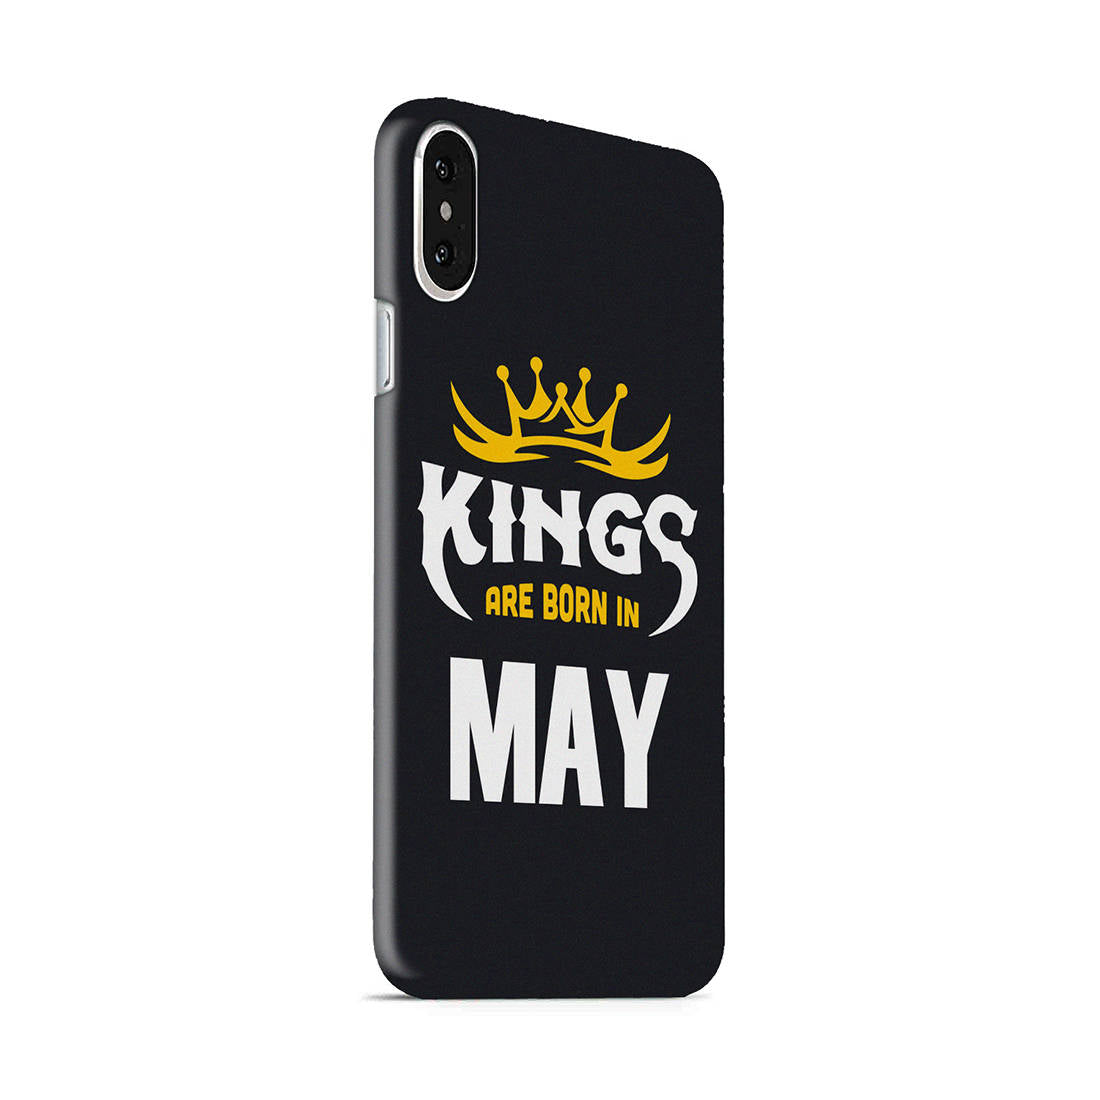 Kings May - Narcissist iPhone X Mobile Cover Case - MADANYU